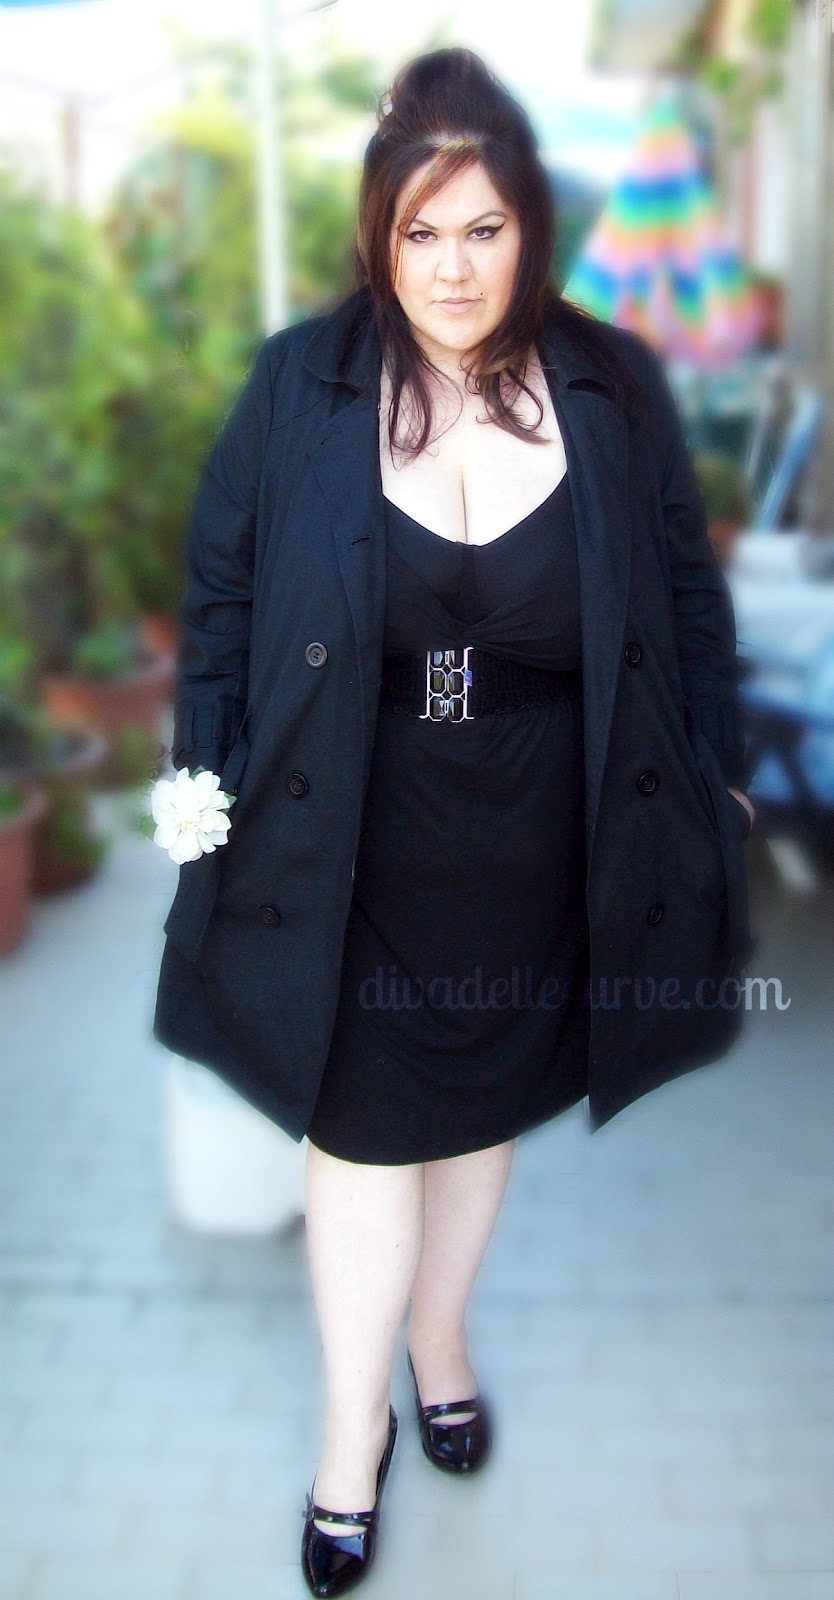 Song inspired plus size outfit - Back to Black by Amy Winehouse ... 37512371c